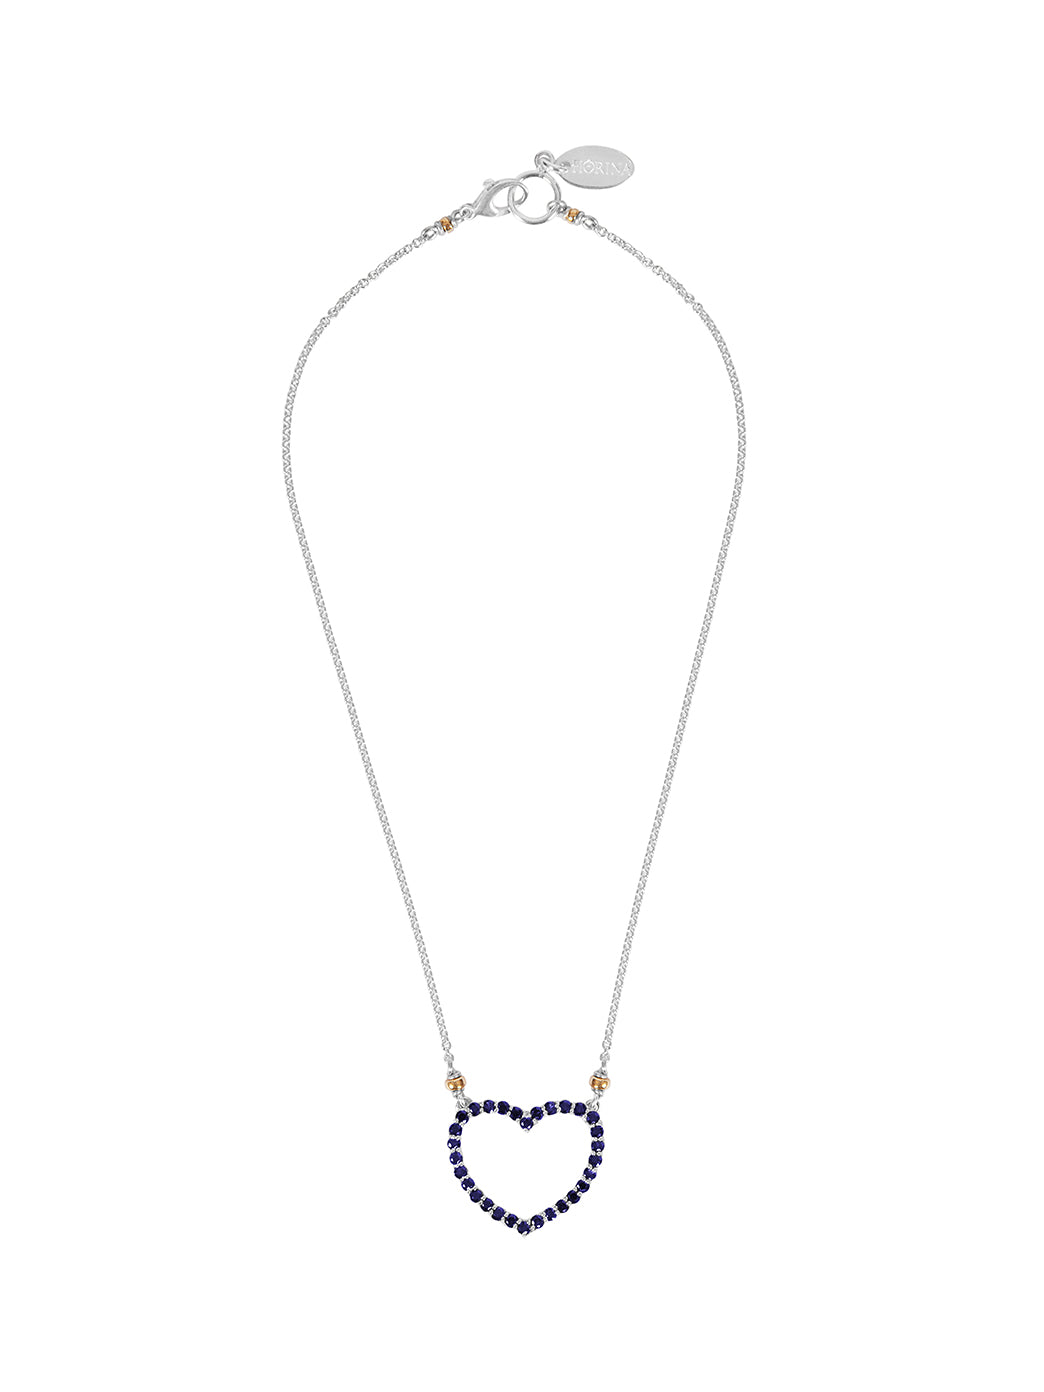 Fiorina Jewellery Heart Love Necklace Blue Sapphire